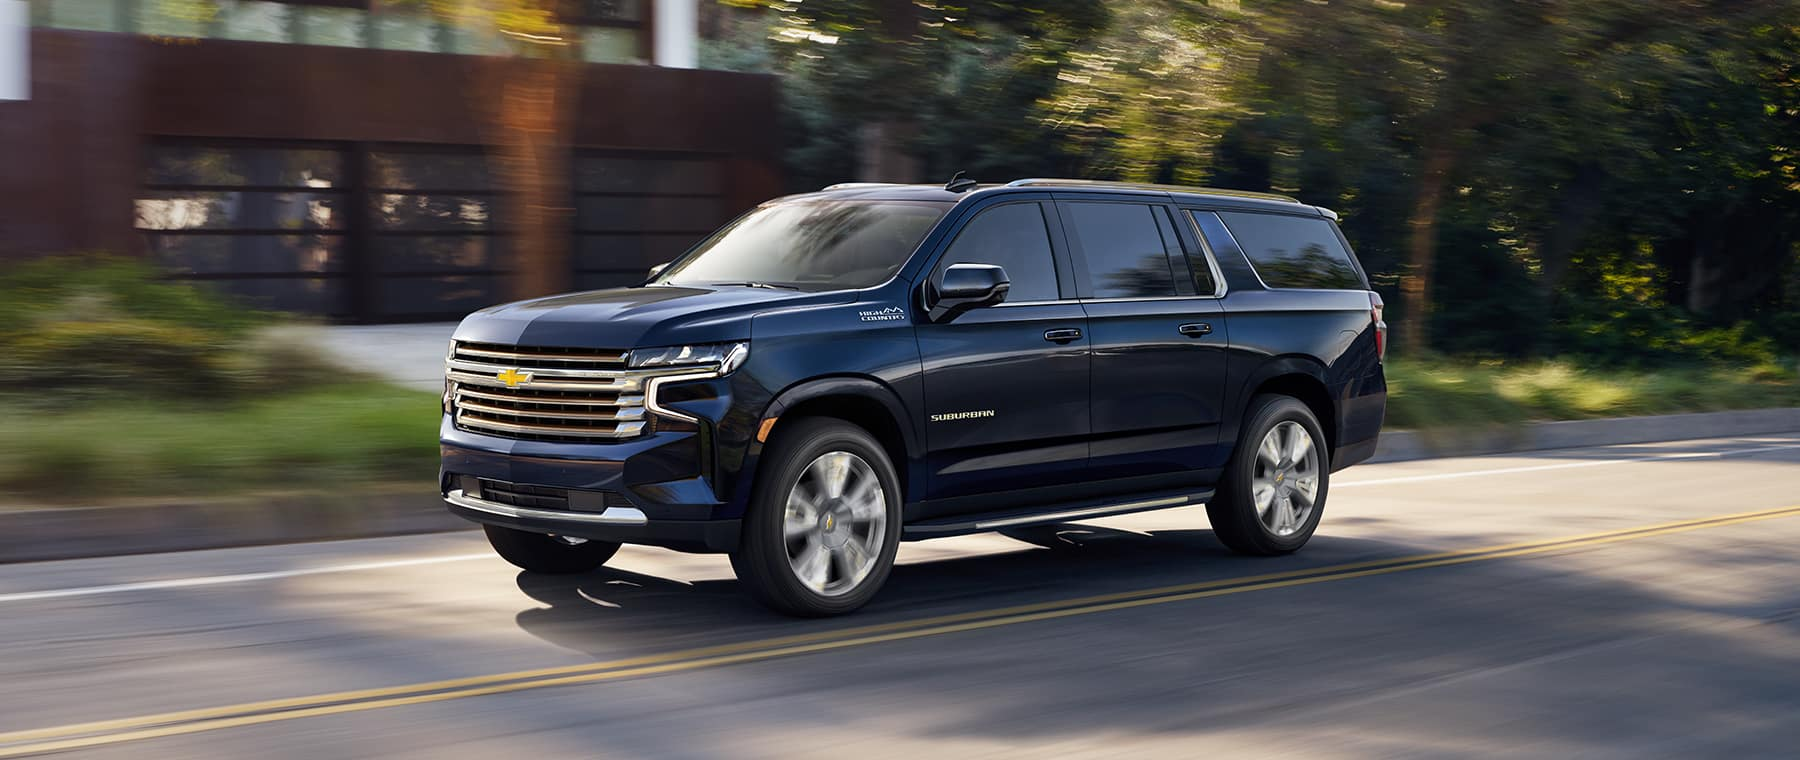 2021 Chevrolet Suburban driving down the avenue